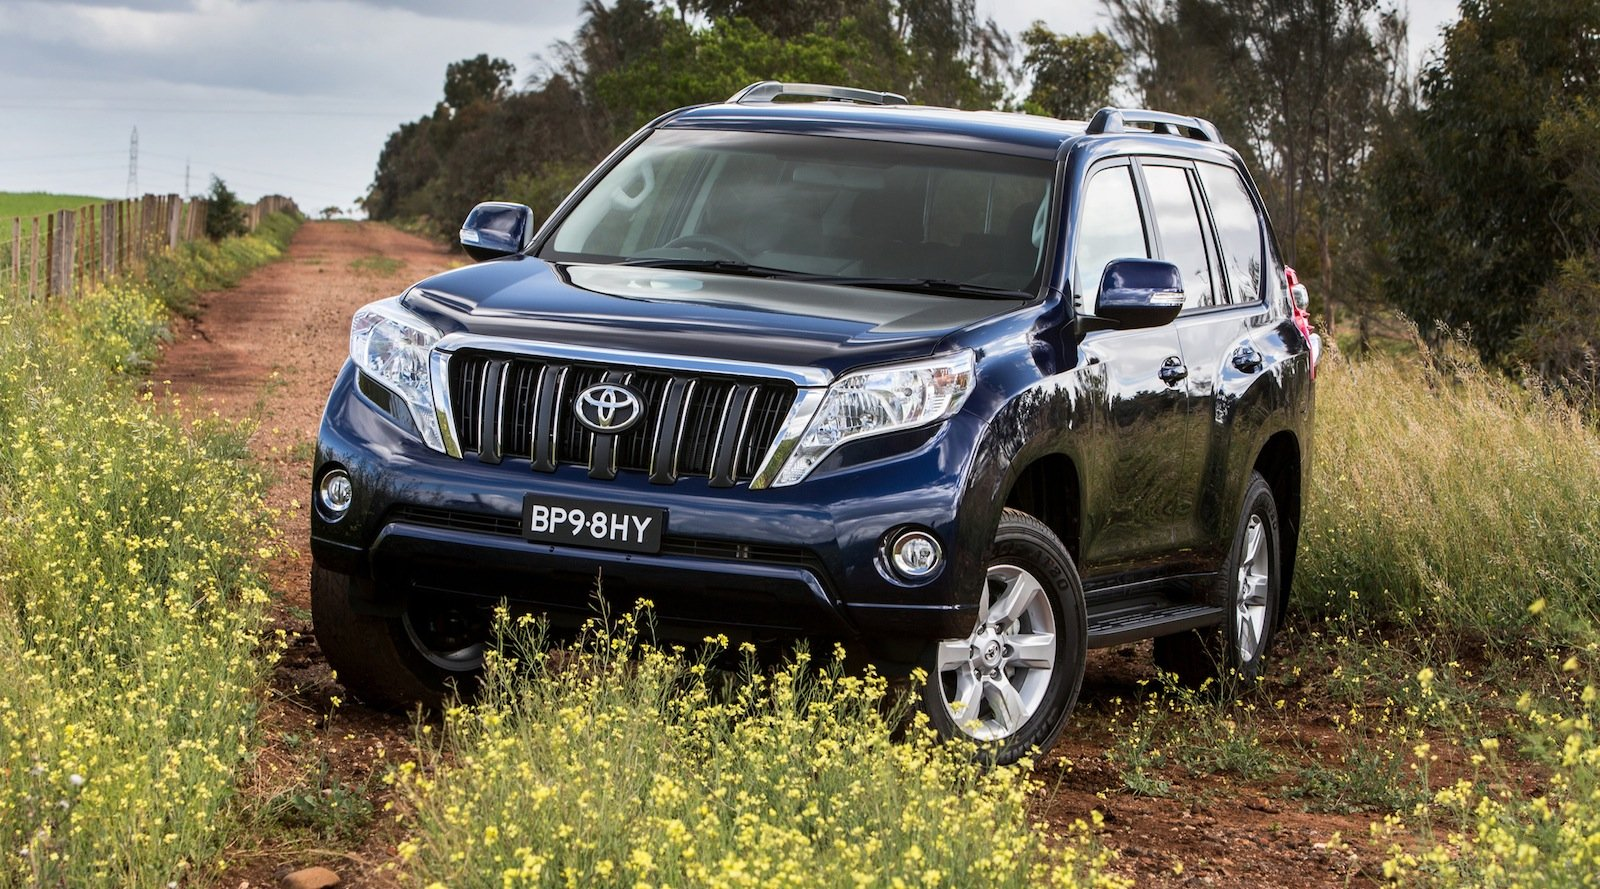 2014 Toyota LandCruiser Prado: pricing and specifications - Photos (1 of 18)